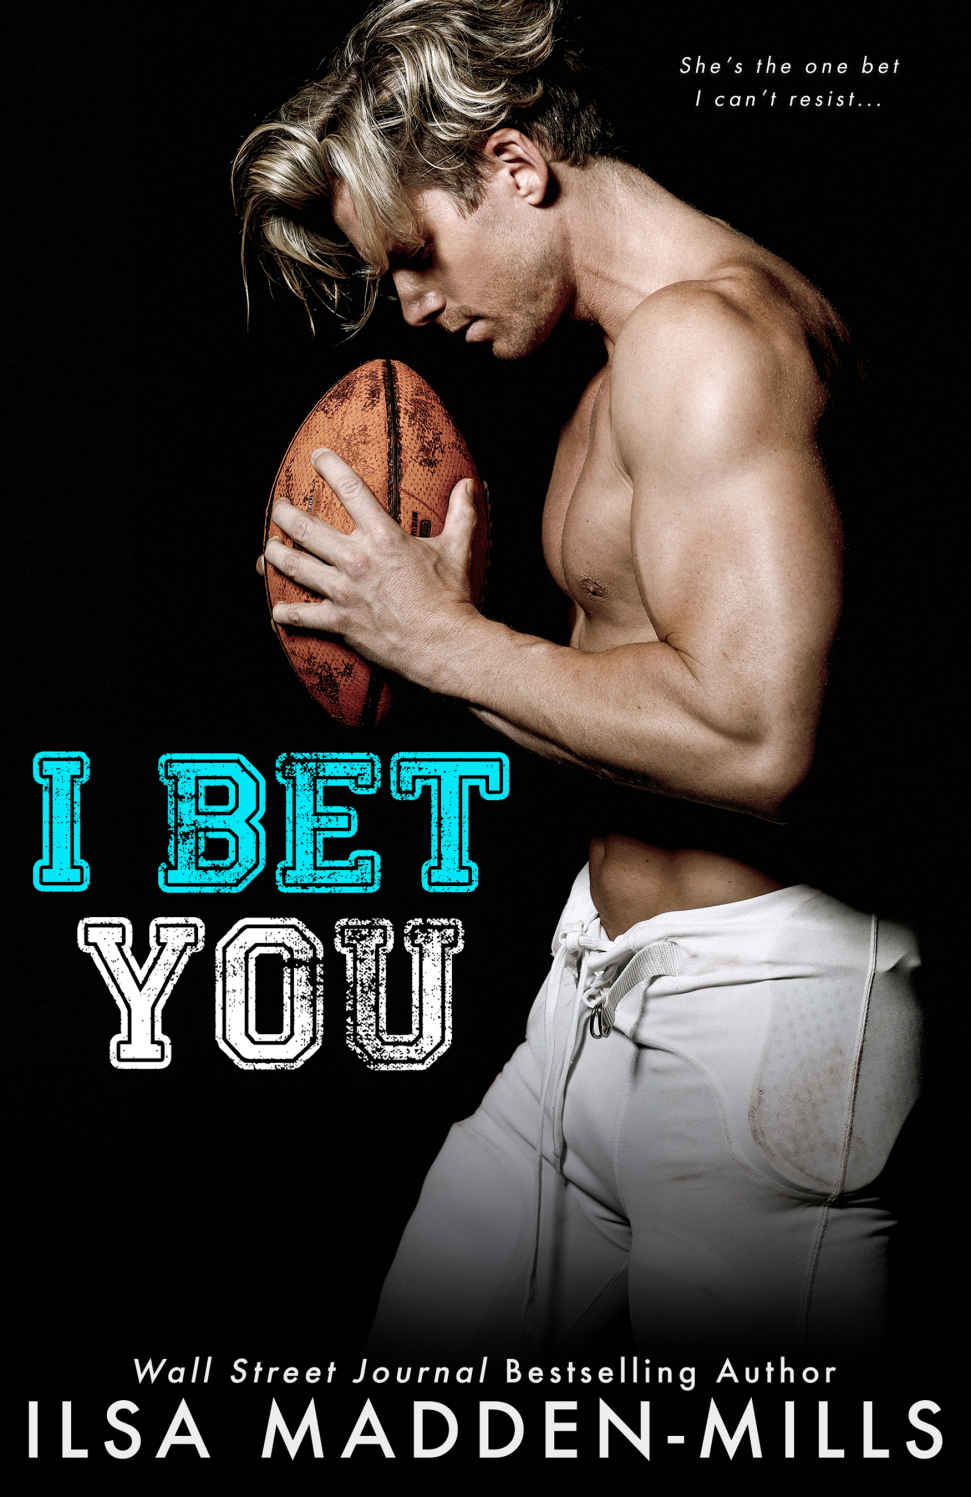 I Bet You - Ilsa Madden-Mills [kindle] [mobi]